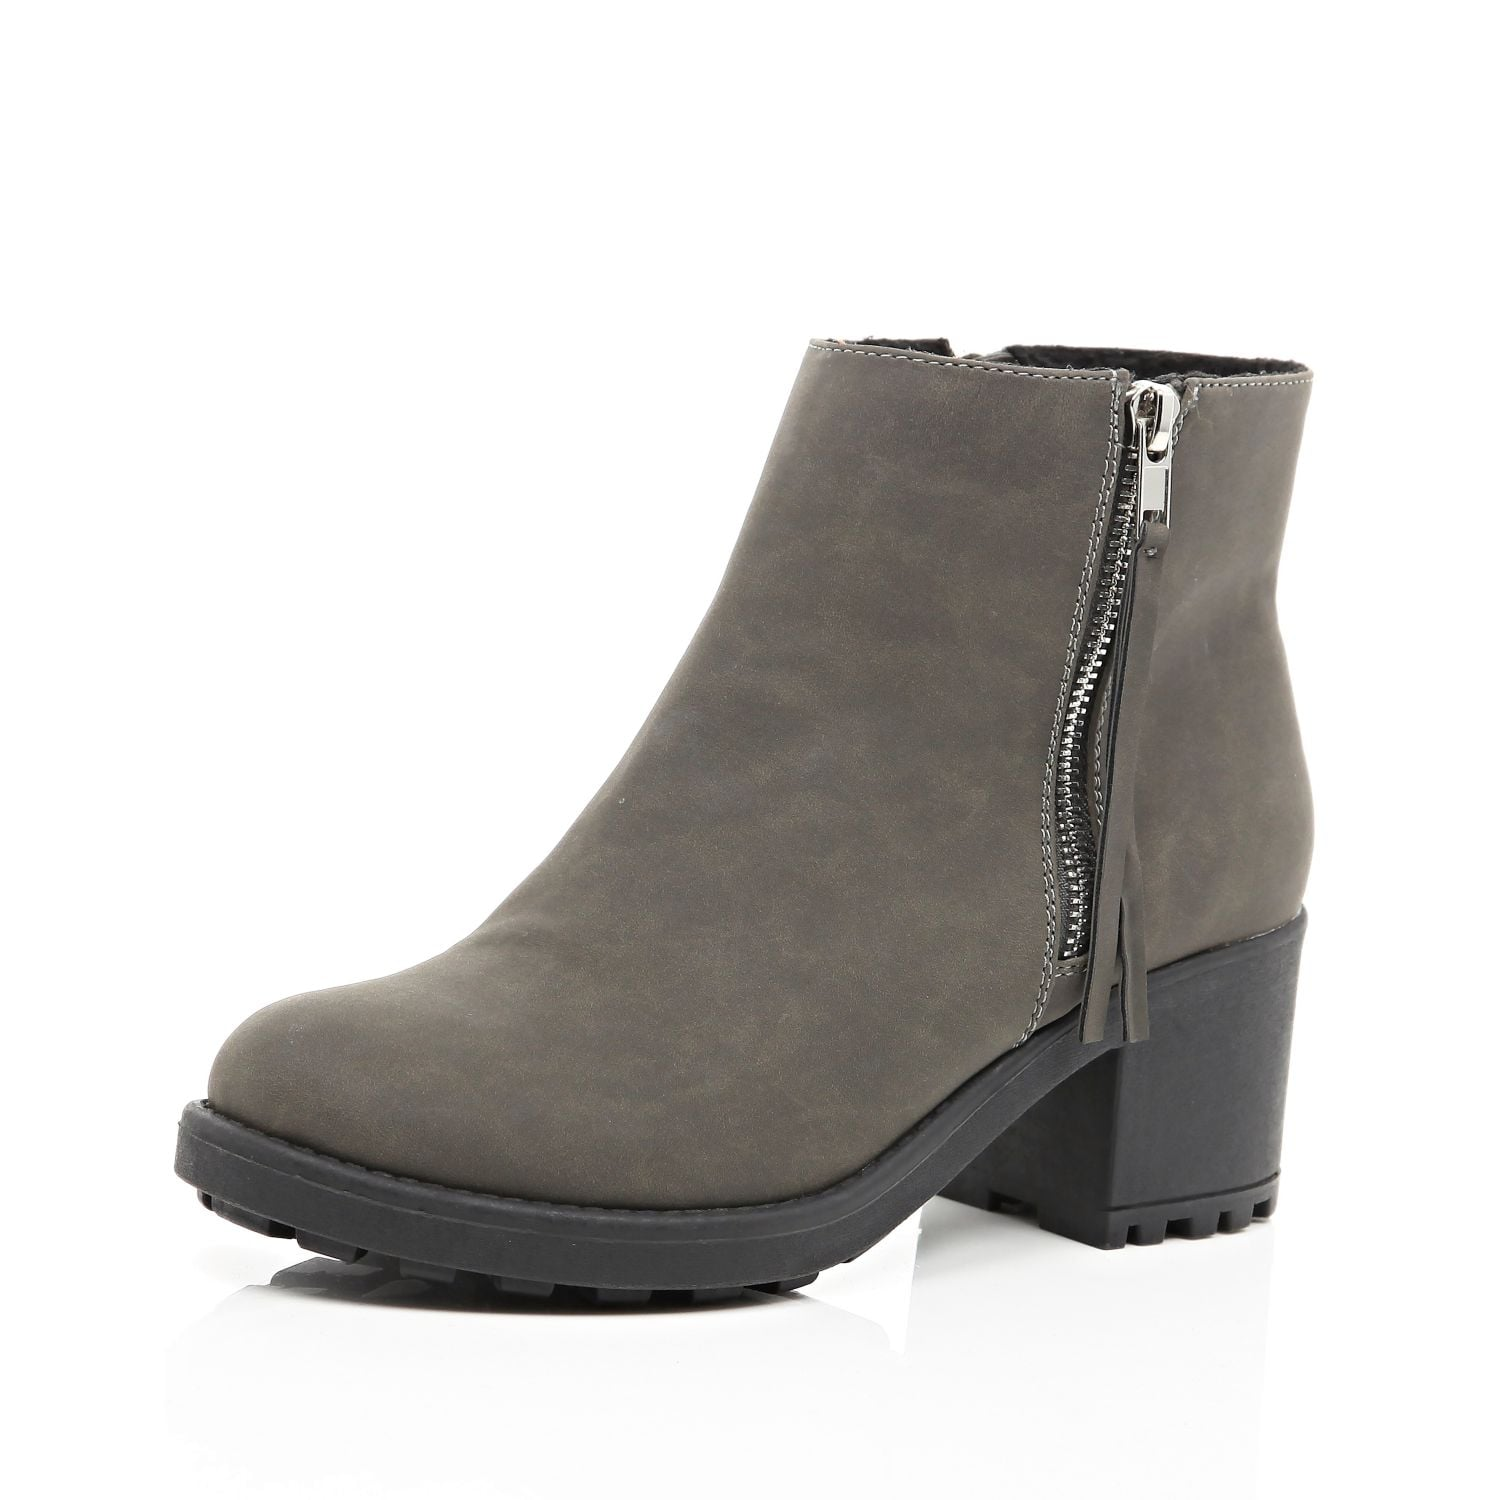 Grey Ankle Boots - Boot Hto